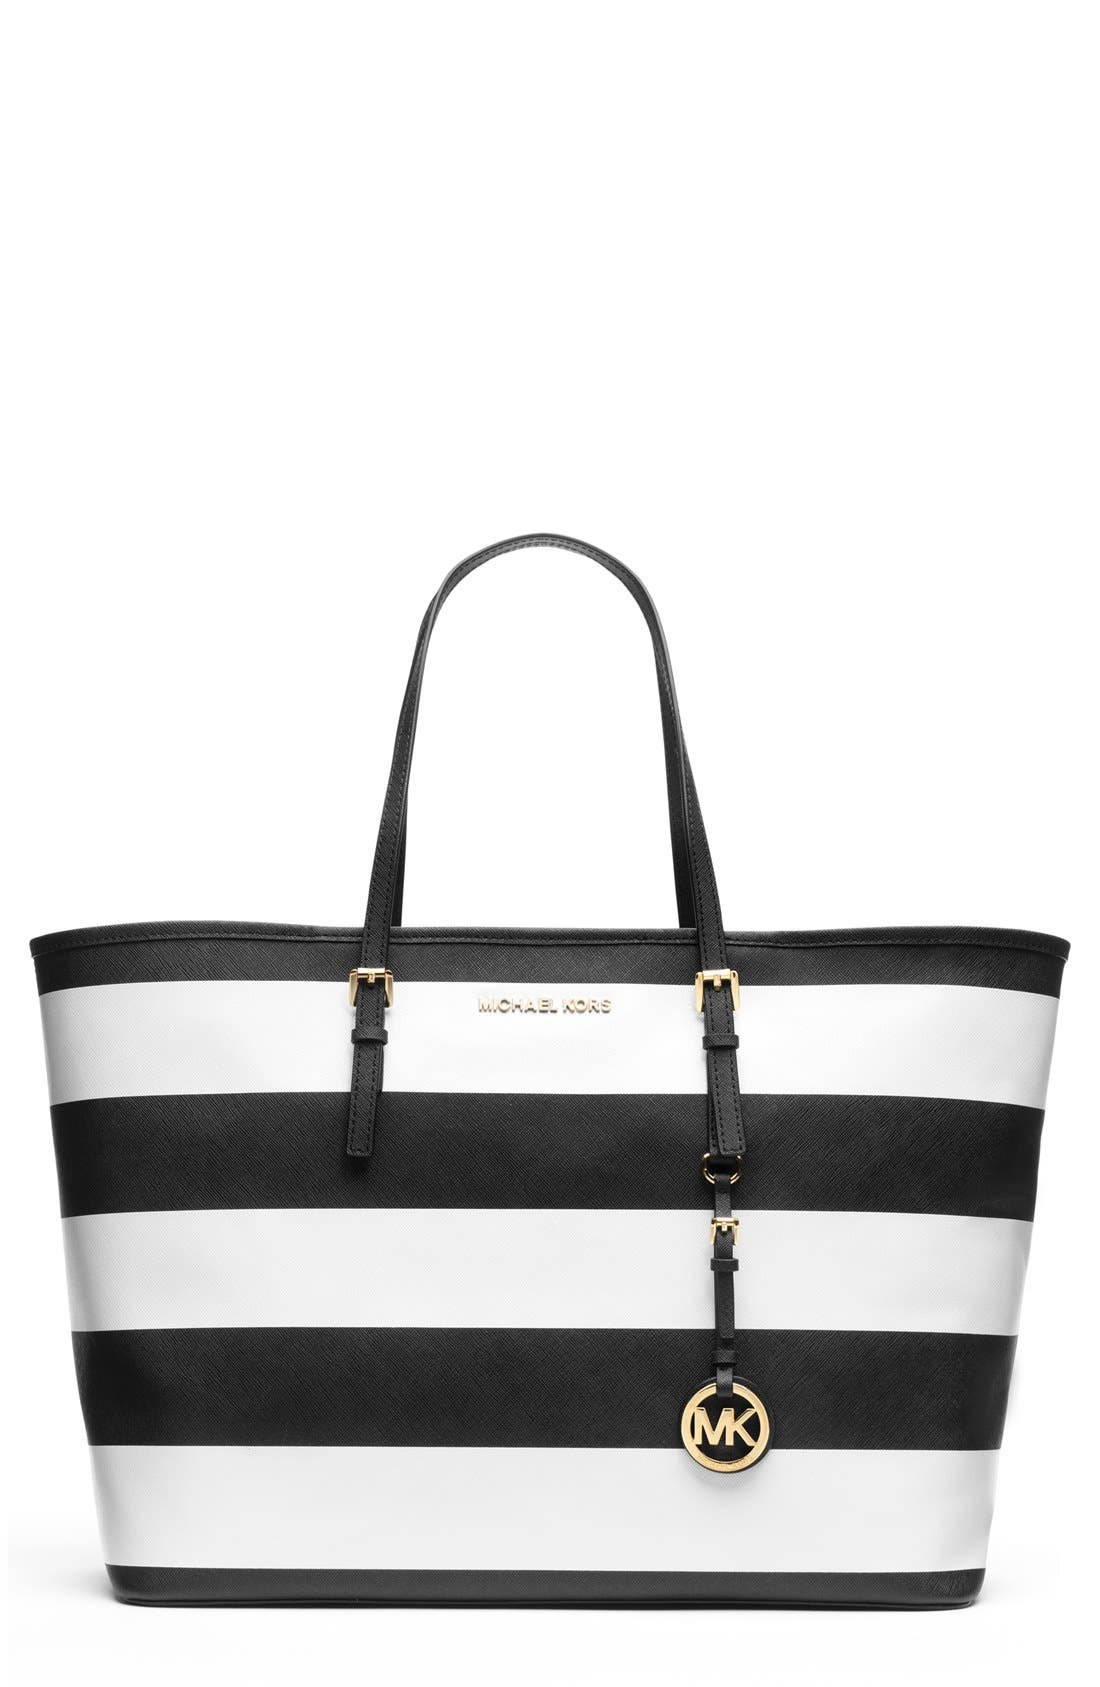 Alternate Image 1 Selected - MICHAEL Michael Kors 'Medium Jet Set' Saffiano Leather Travel Tote